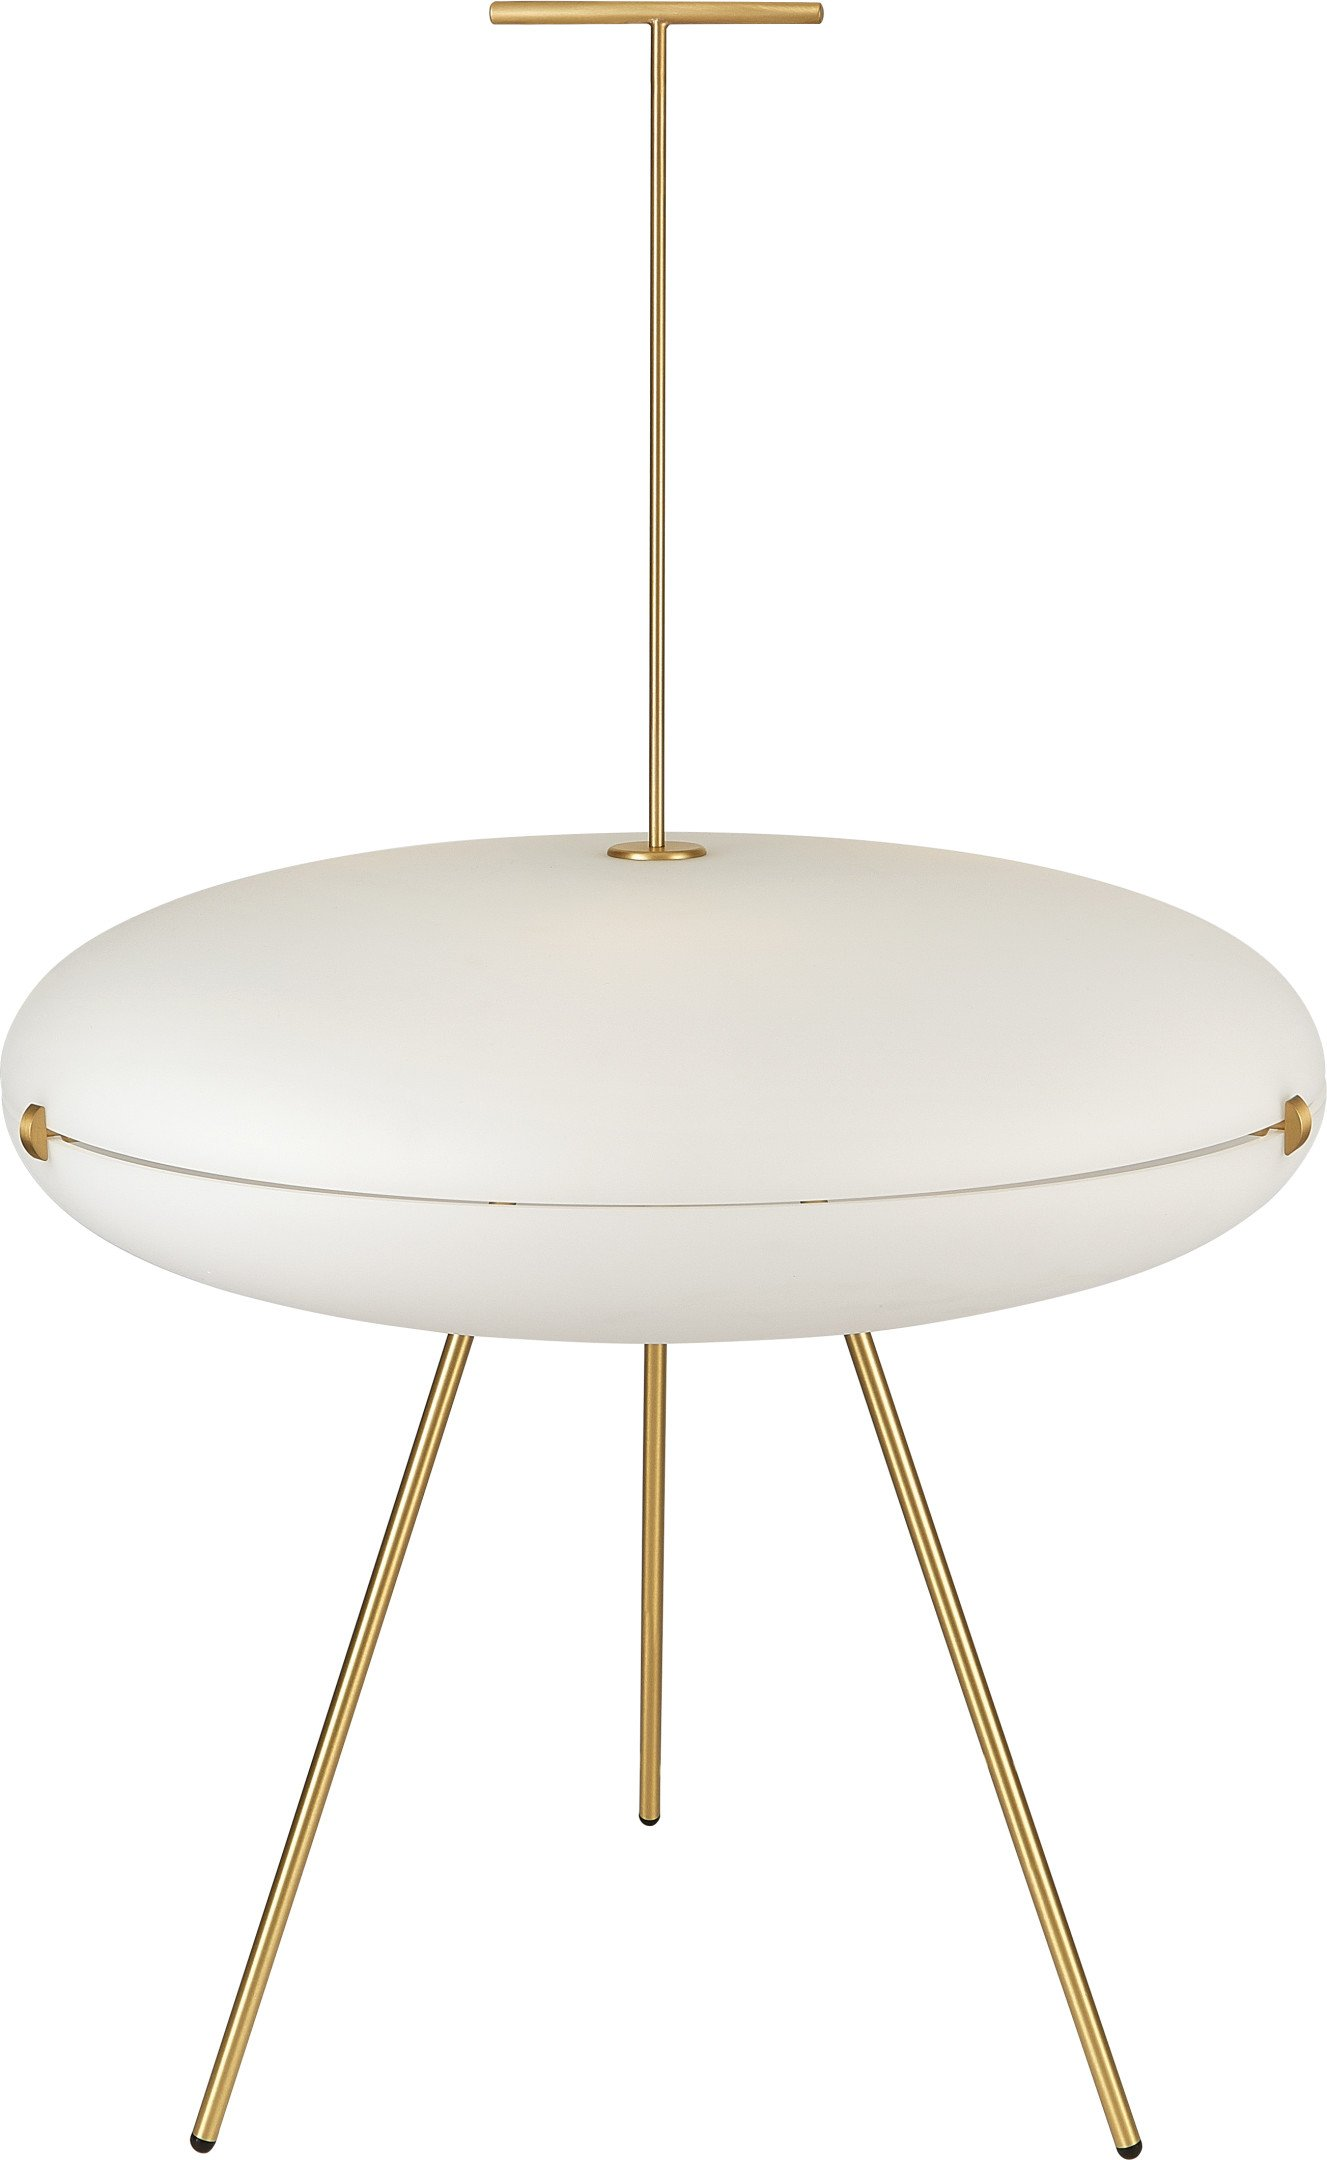 Brass Luna Orizzontale Floor Lamp by G. Ponti for Tato Italia